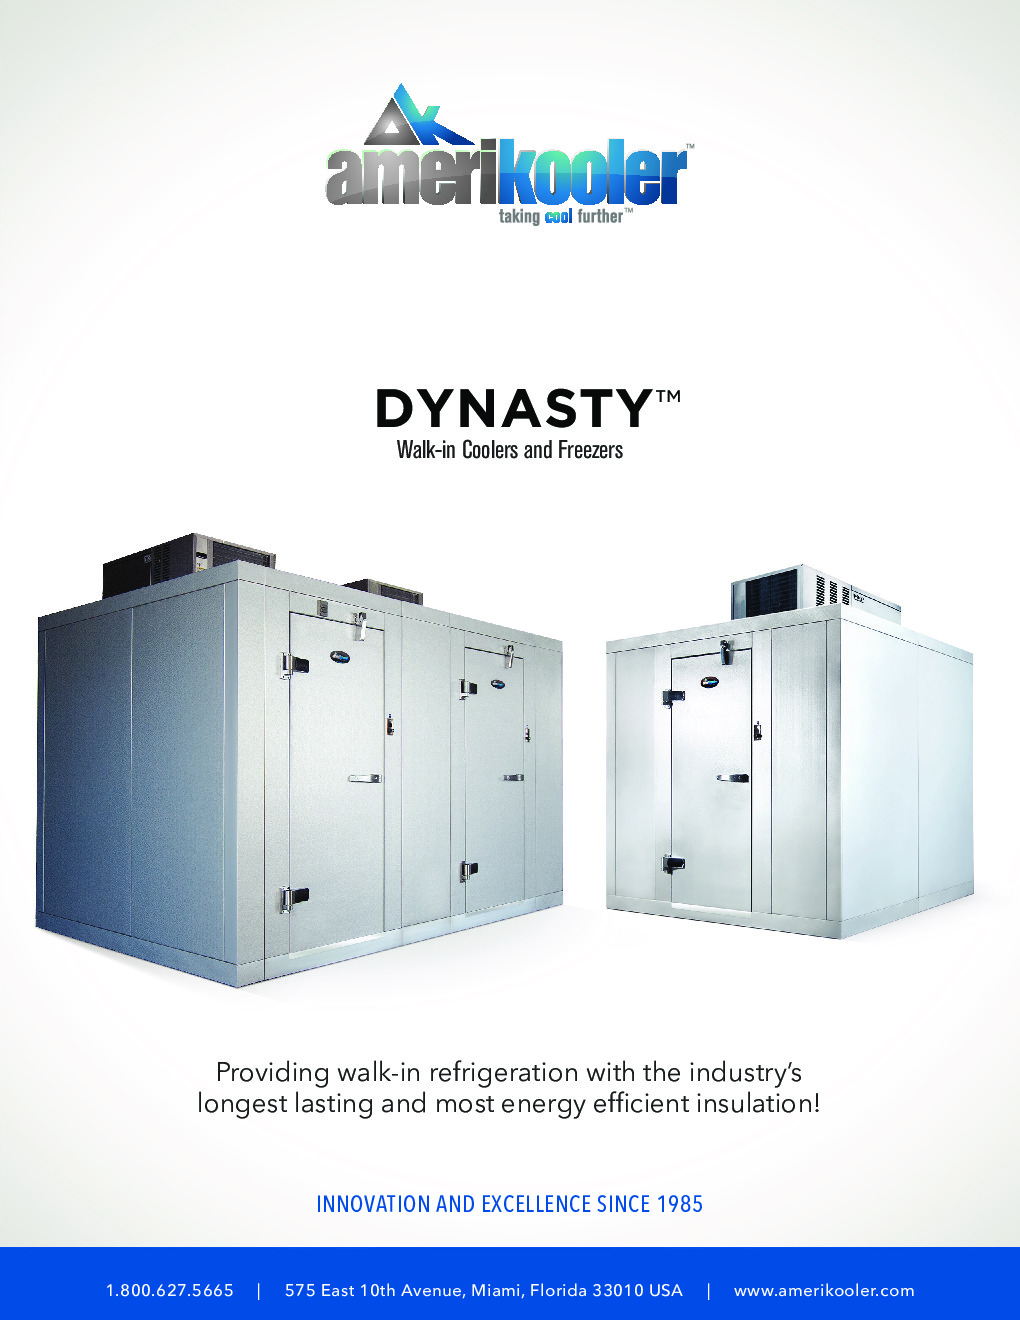 AmeriKooler DW081477N-6/8-SC 8' X 14' Walk-In Cooler, 8' L Cooler without Floor and 6' L Freezer, Self Contained